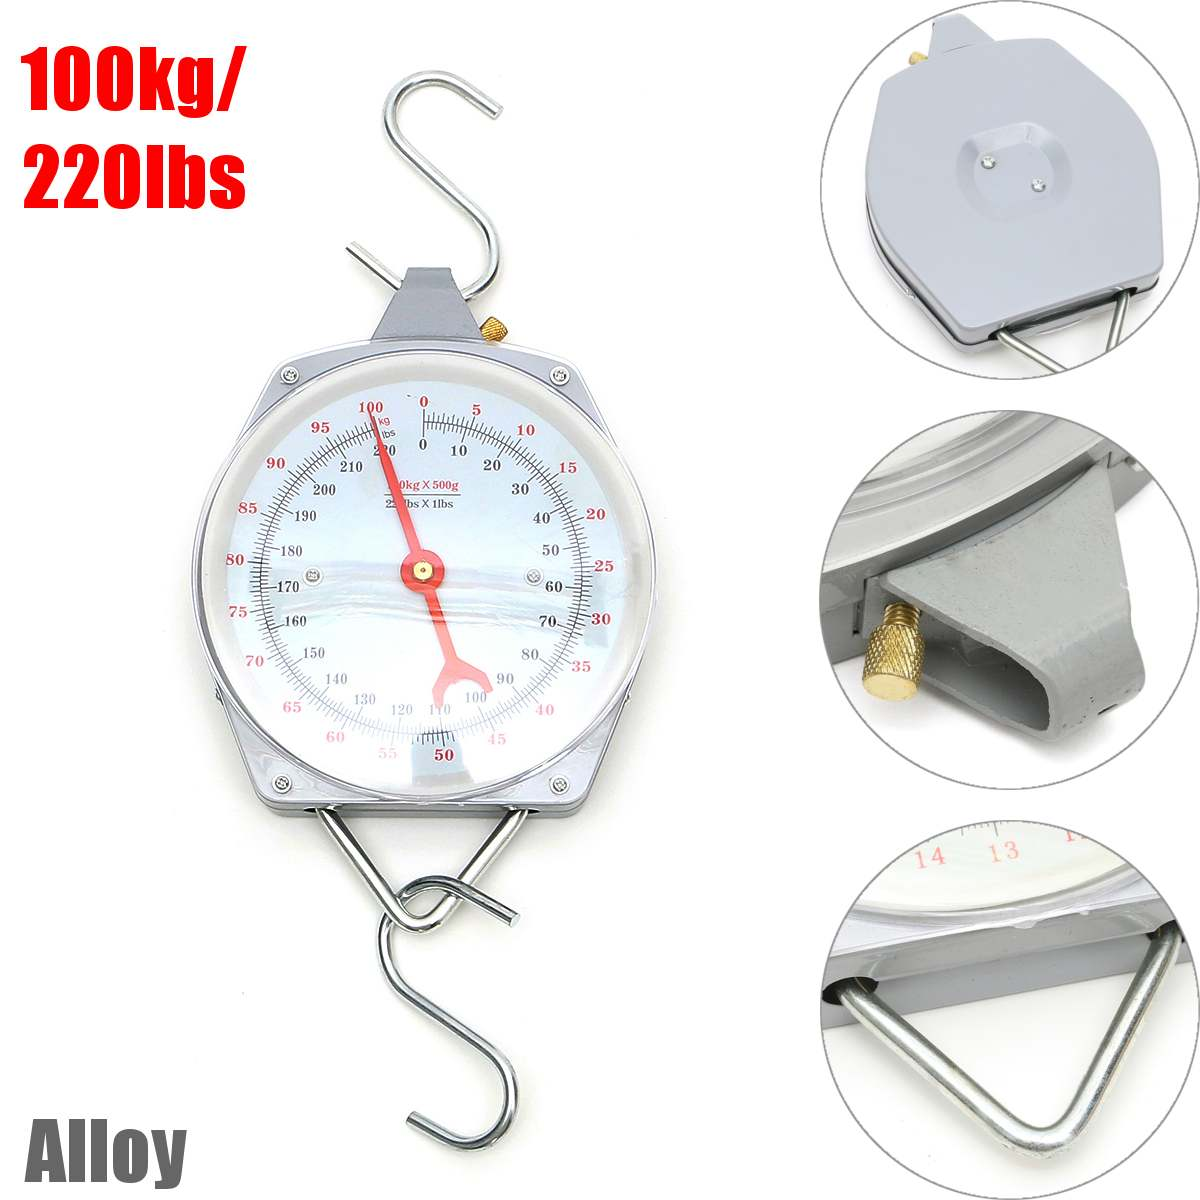 100kg 220lbs Hanging Scale Capacity Alloy Mechanical Hanging Scales With 2 Hook